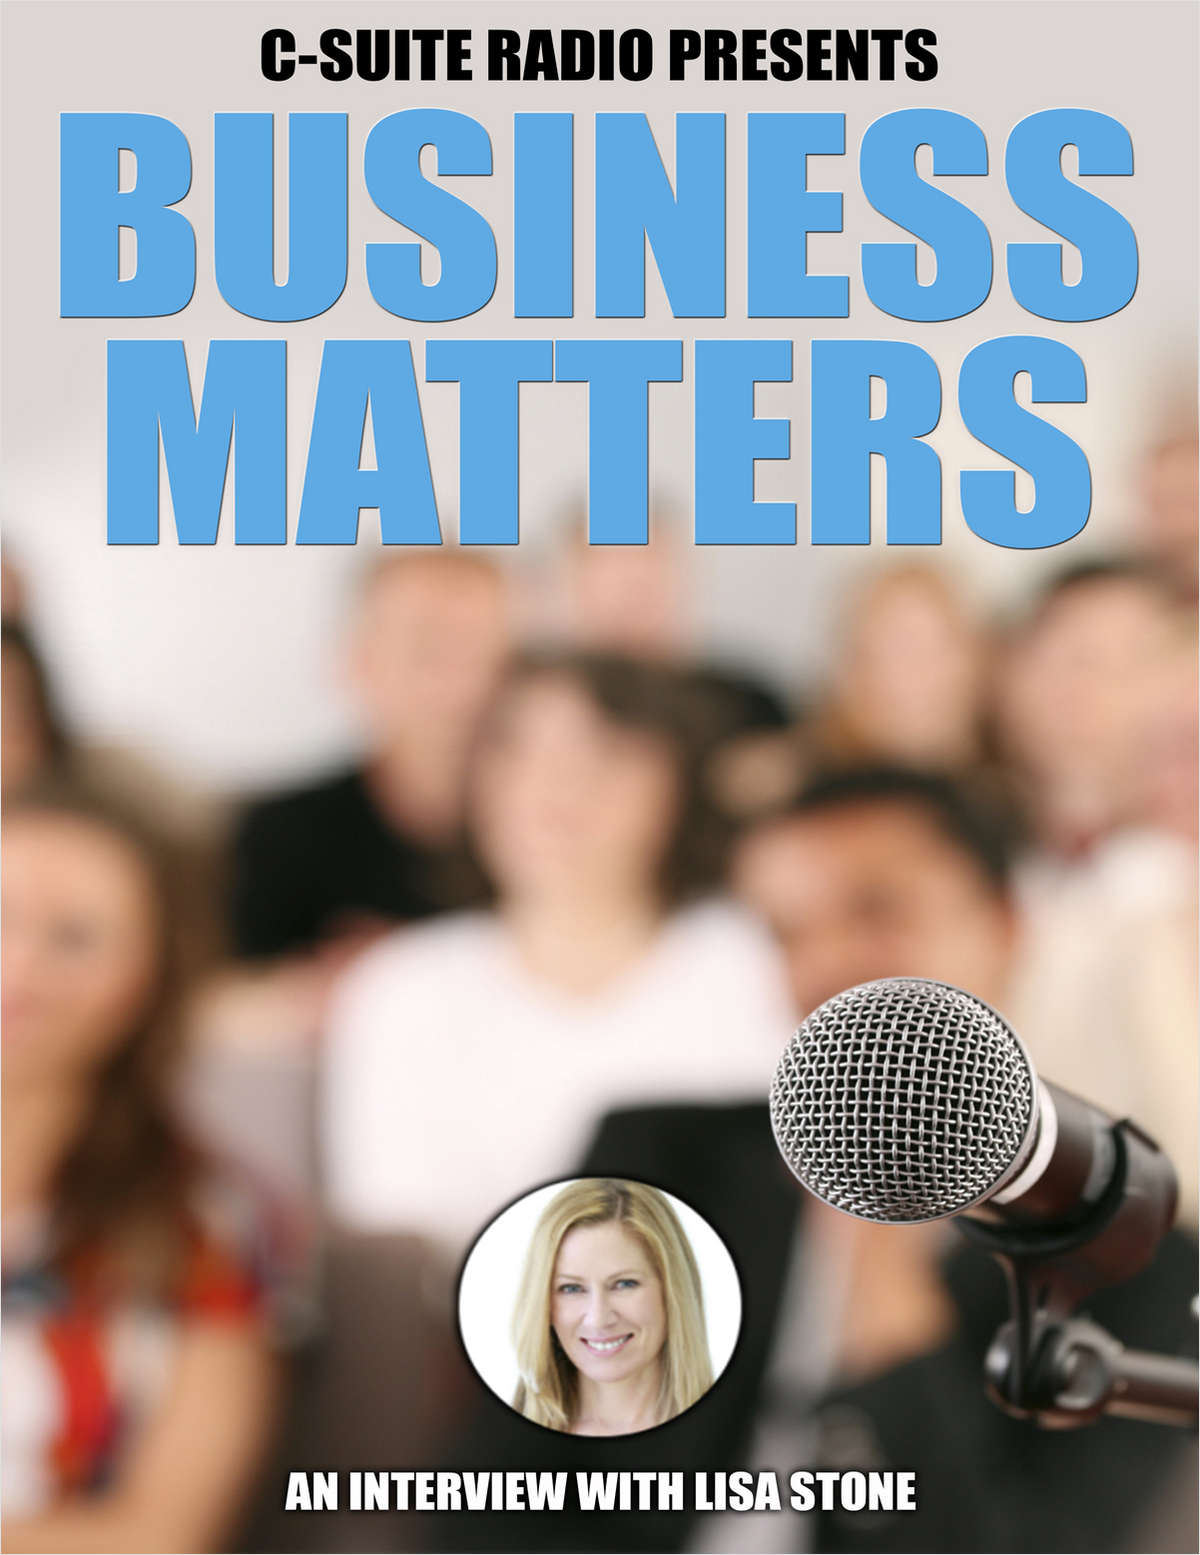 Business Matters Podcast: Discussing Work-Life Balance with Lisa Stone, Co-Founder of BlogHer